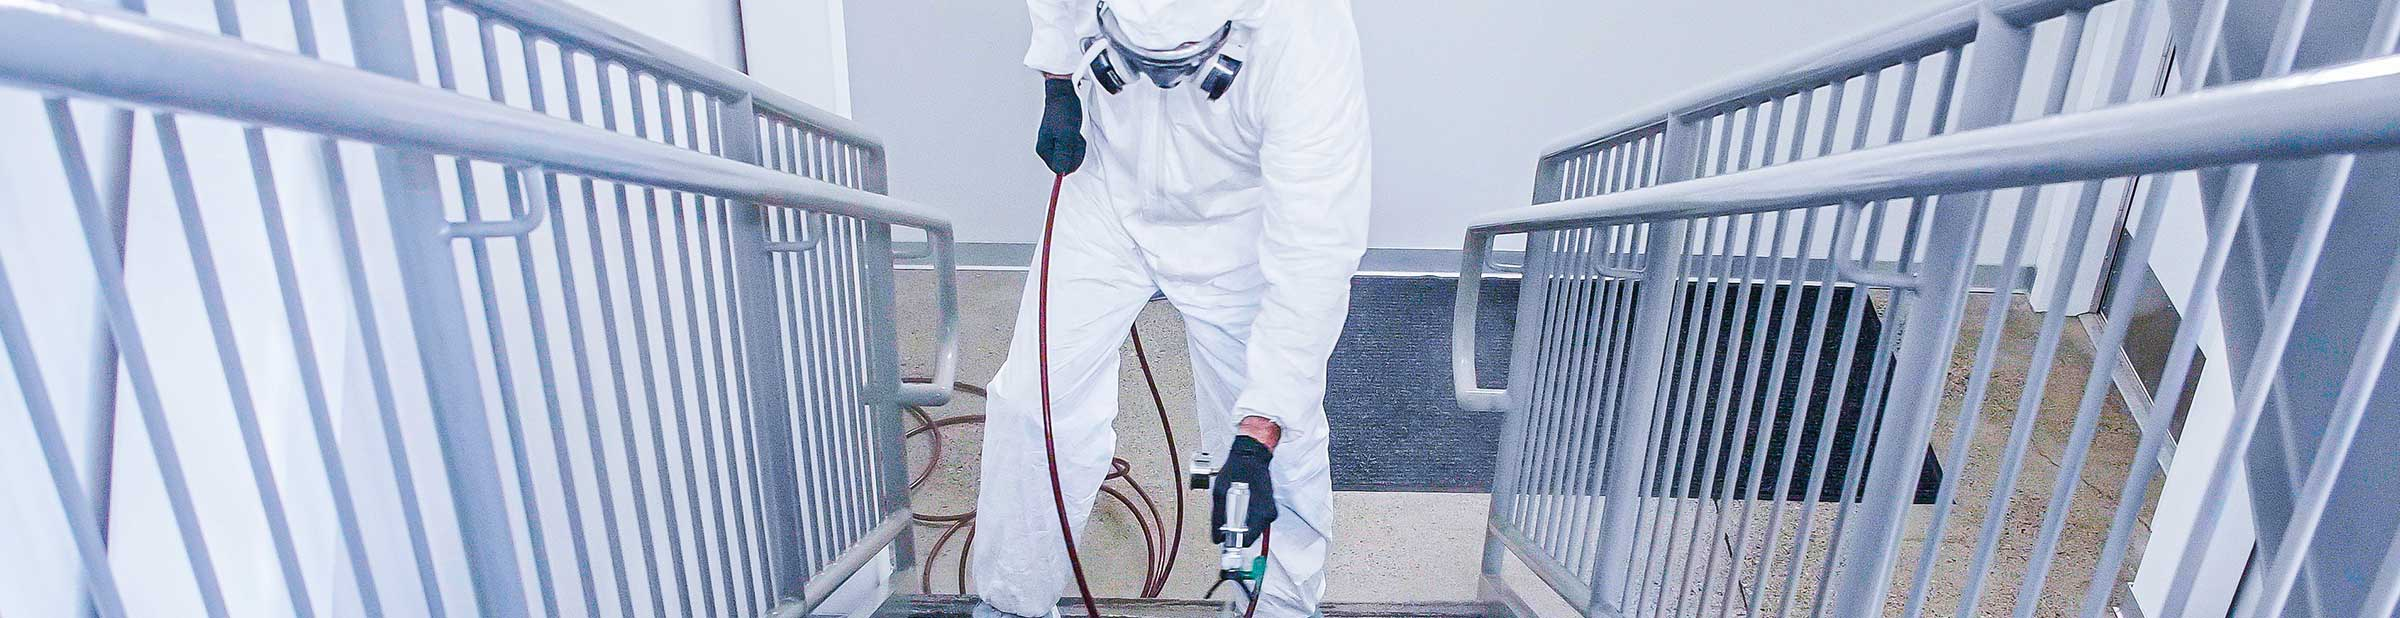 Person wearing PPE.